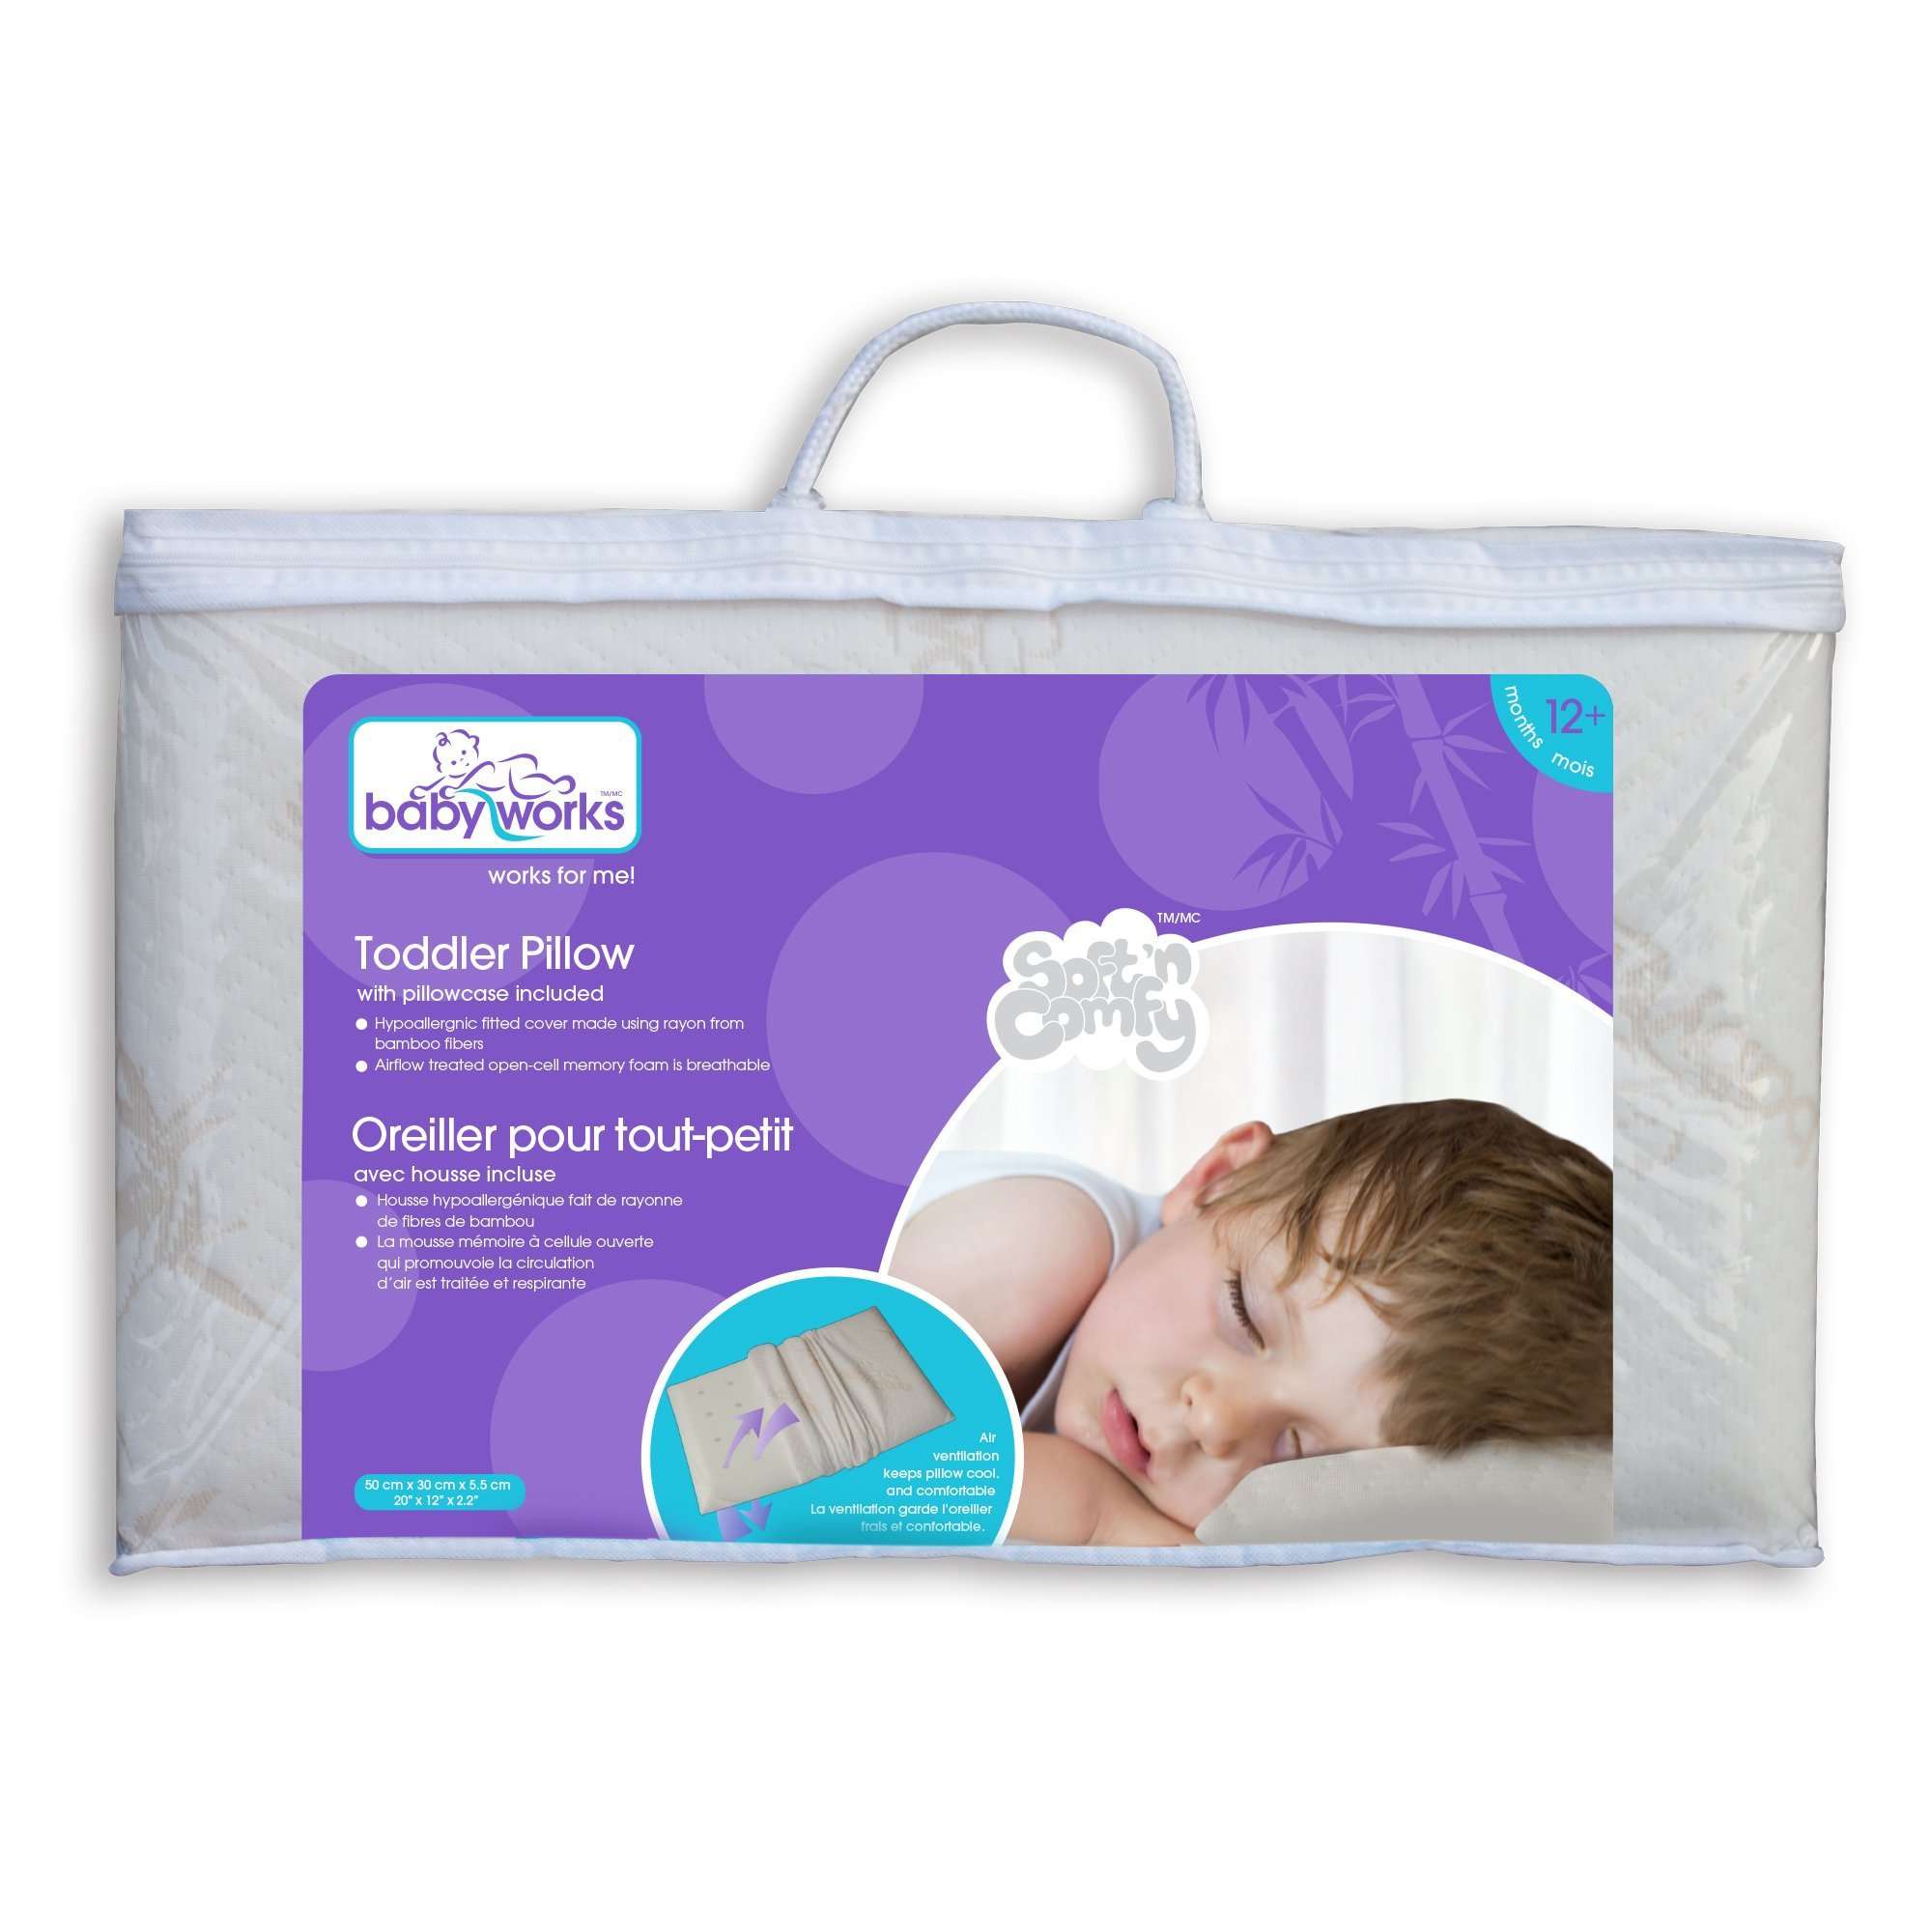 Baby Works Toddler Pillow with Rayon from Bamboo Pillowcase